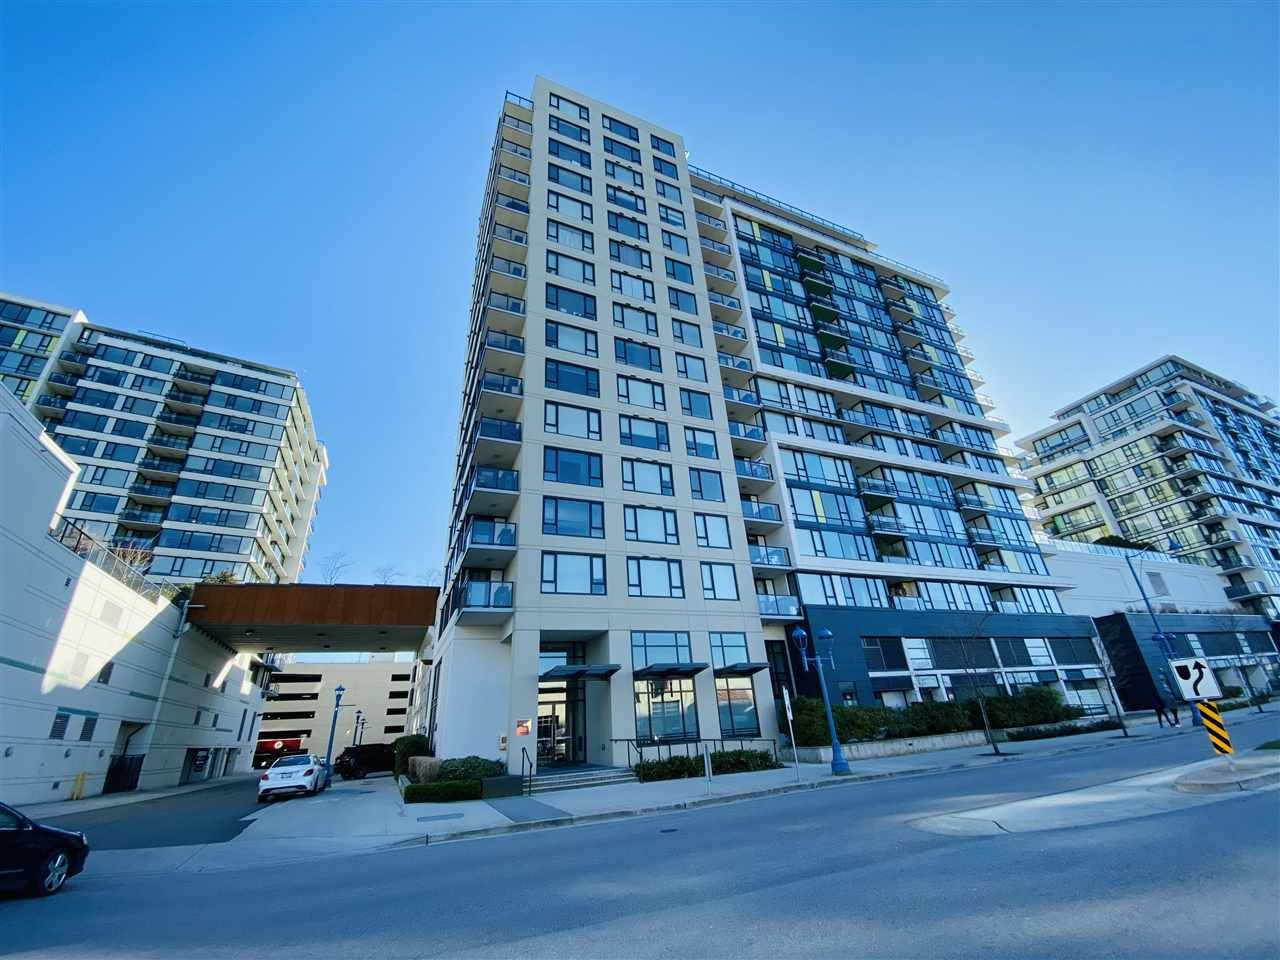 """Main Photo: 1202 7888 ACKROYD Road in Richmond: Brighouse Condo for sale in """"QUINTET"""" : MLS®# R2558292"""